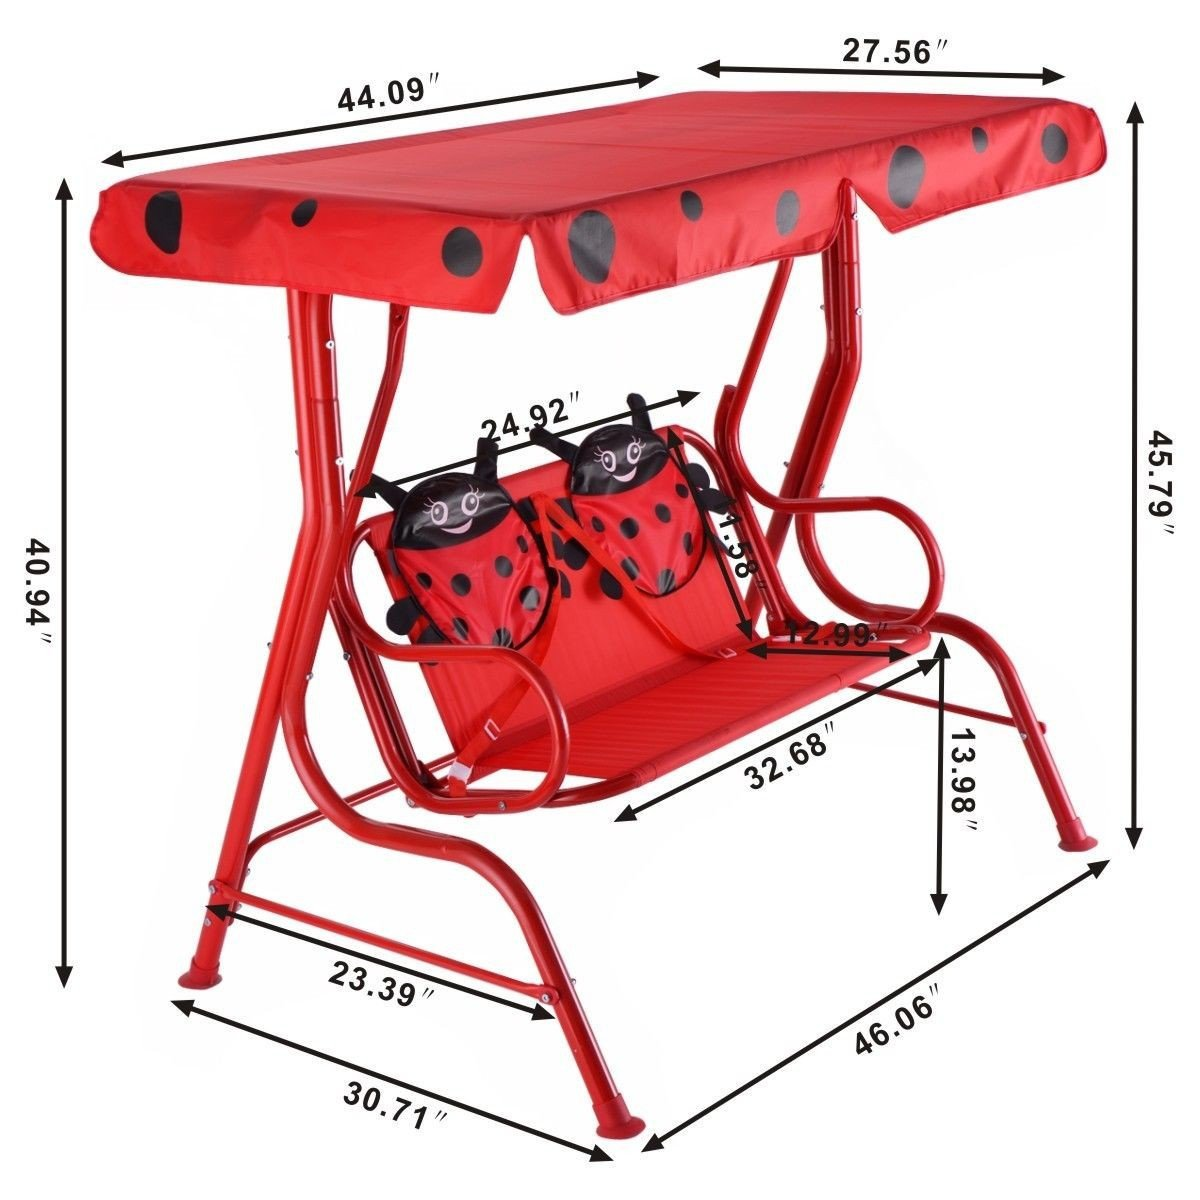 kids patio swing chair children porch bench canopy 2 person yard furniture red - Patio Swing Chair